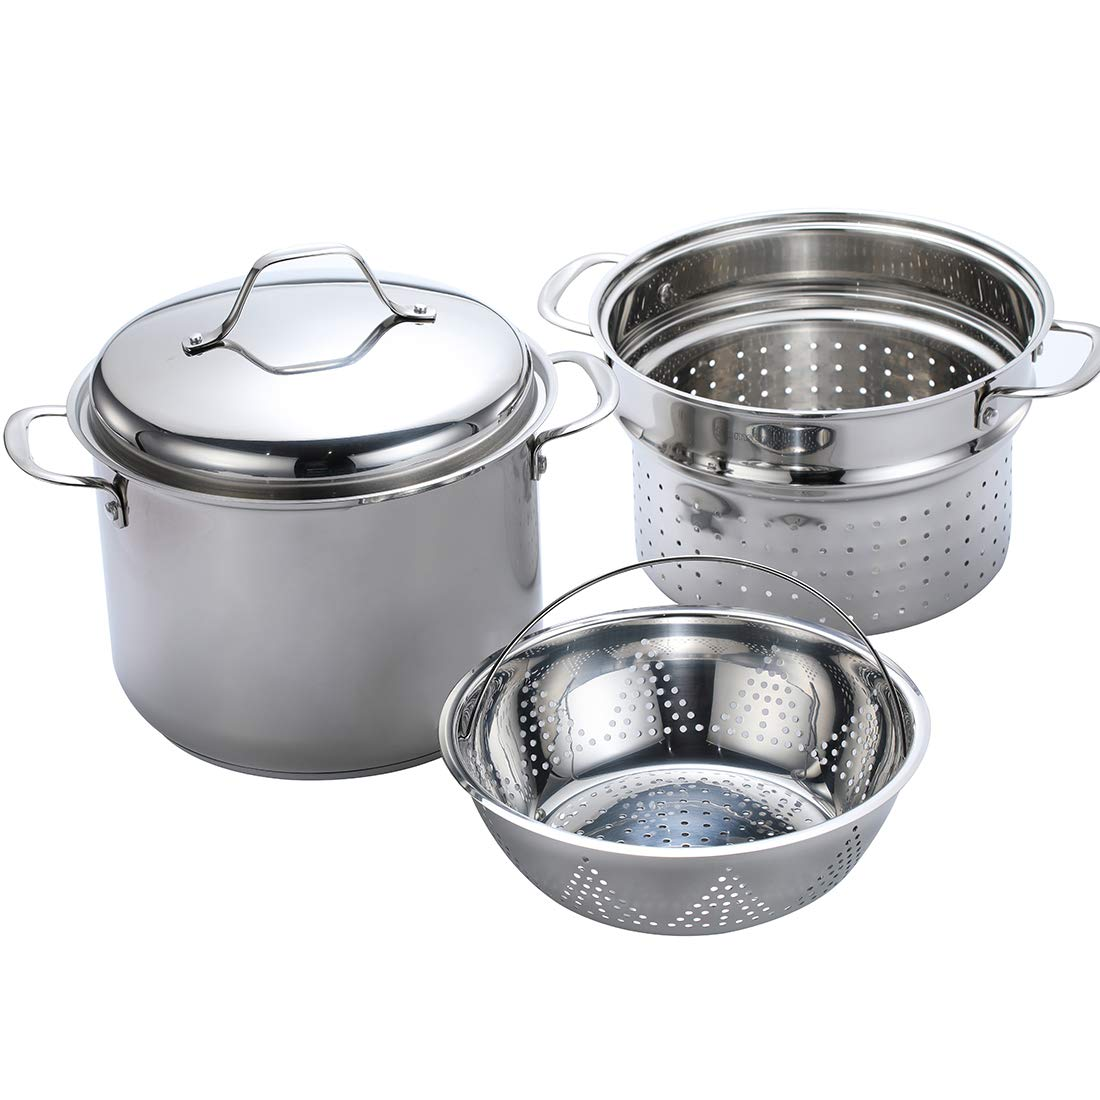 Momscook 8-Quart Classic Stainless Steel Covered Stockpot with Two Layers of Steamer/Pasta Insert, 4-Piece